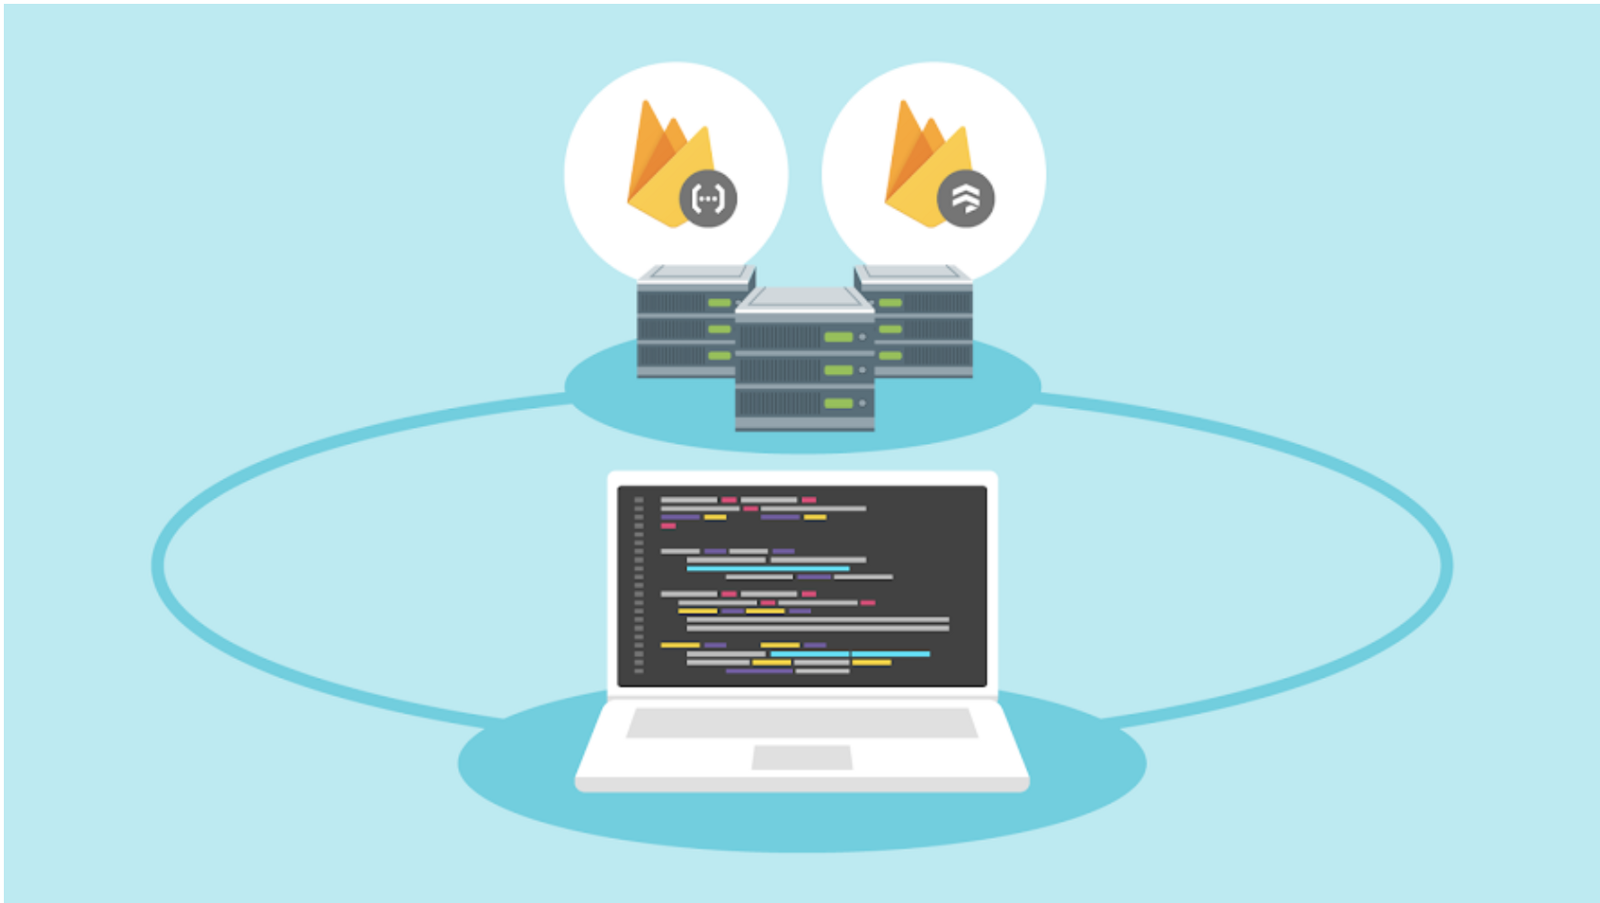 Part One: Angular with Firebase Hosting